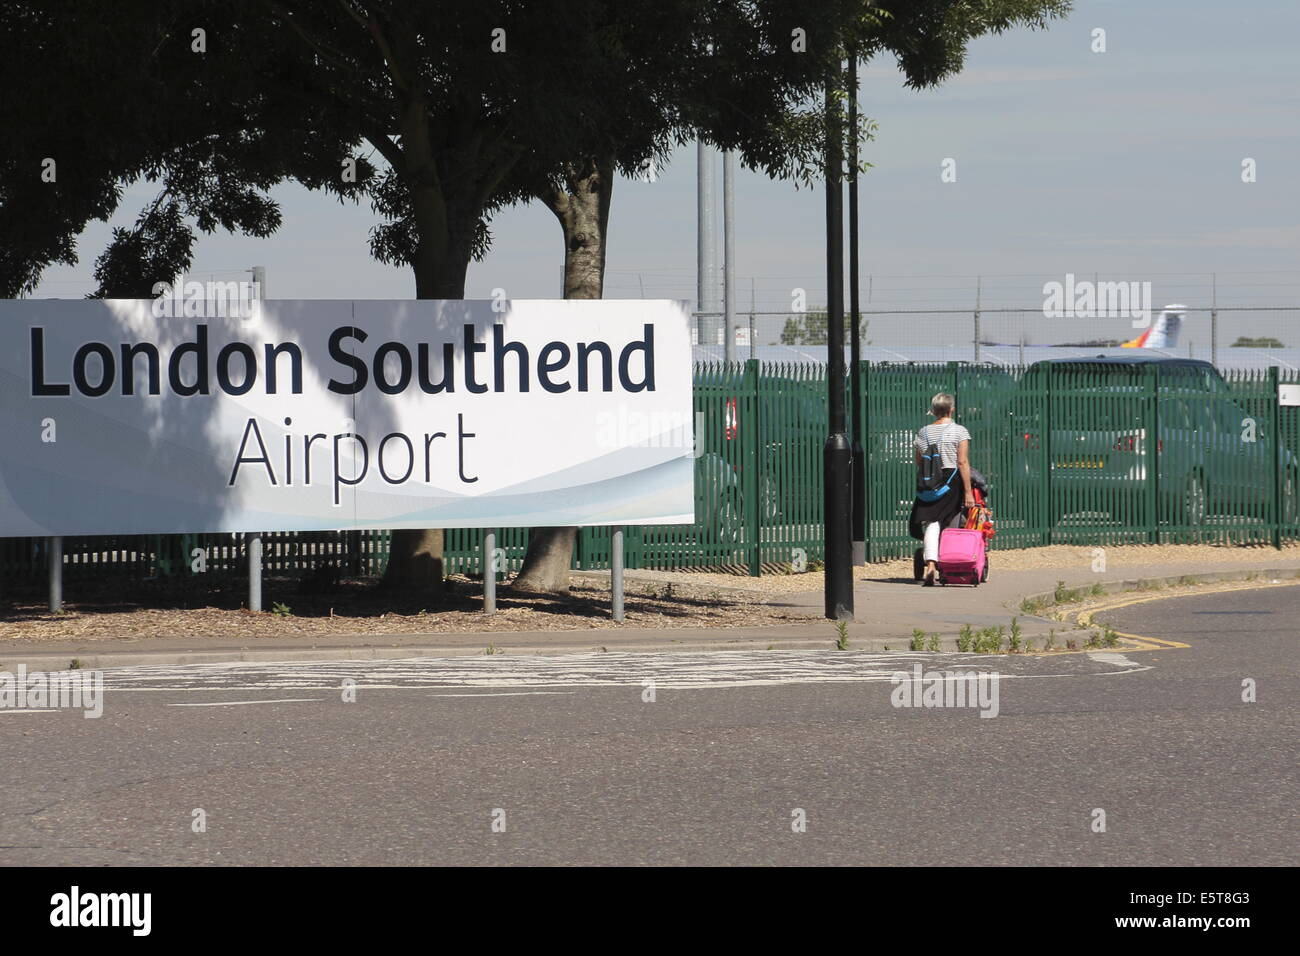 A woman wheeling a suitcase, entering London Southend Airport. - Stock Image